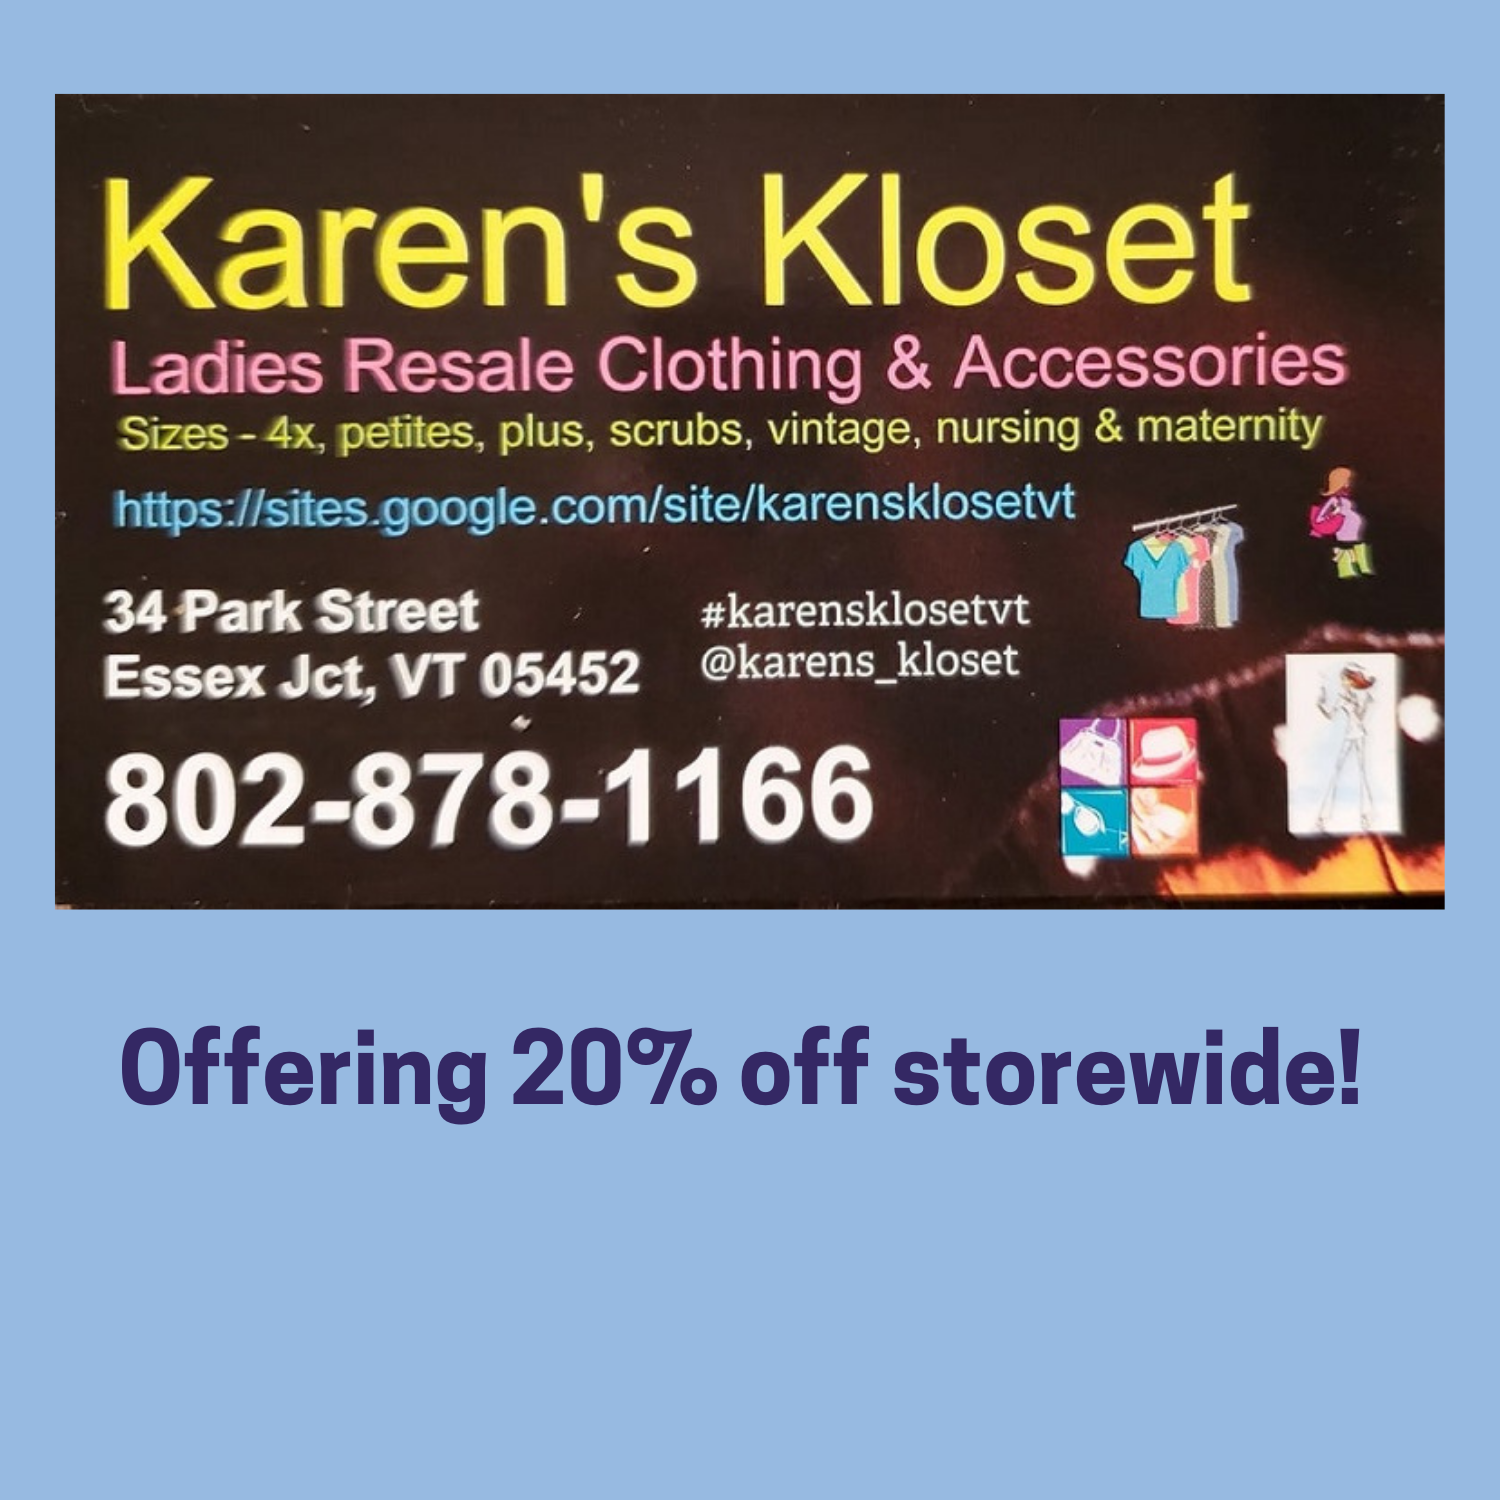 Karen's Kloset - new and used women's clothing and accessories. Open 7 days a week.